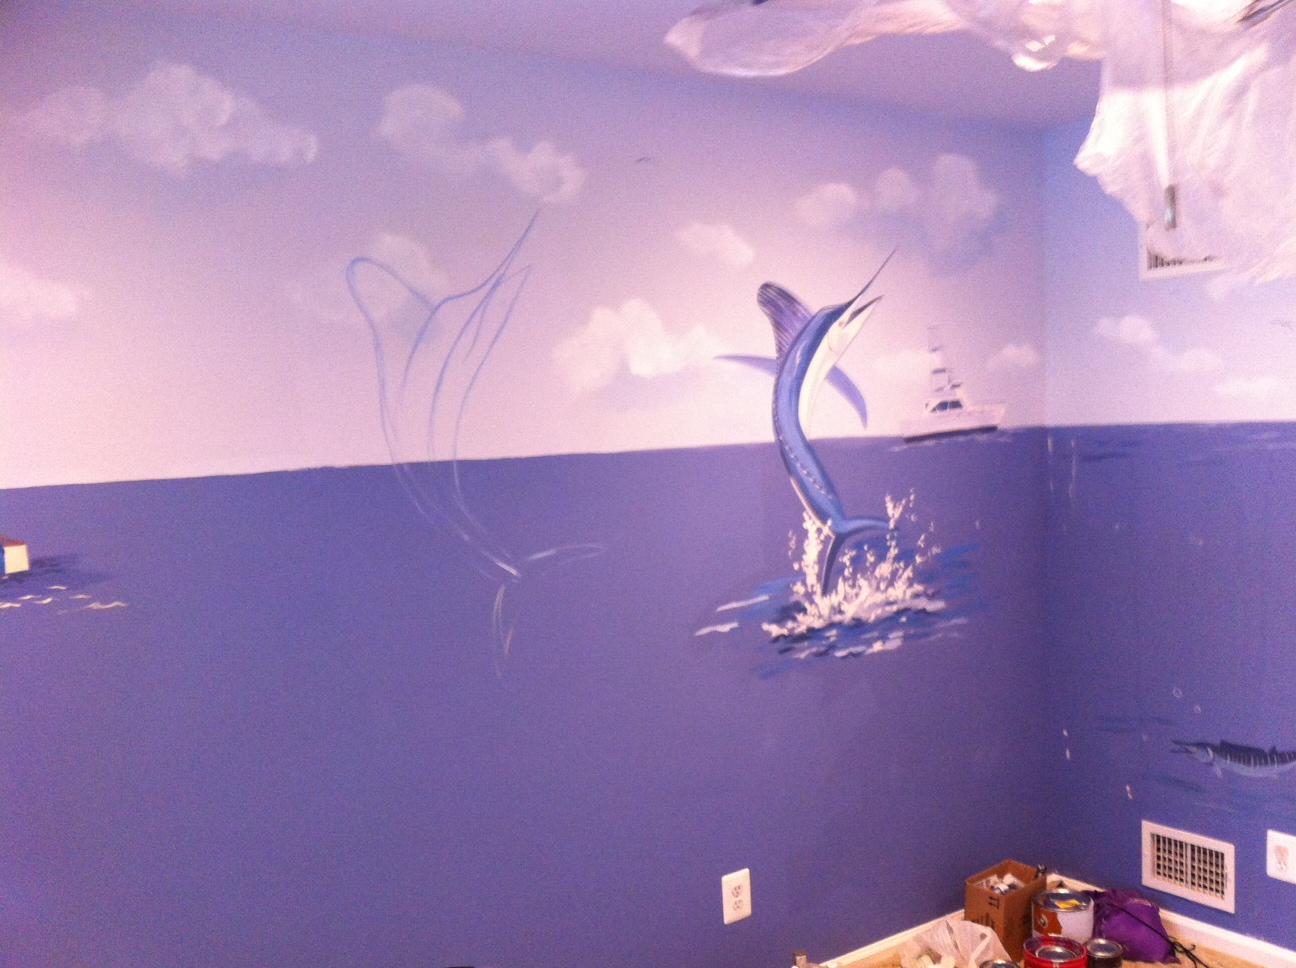 Fishing_Sailfish_mural-1